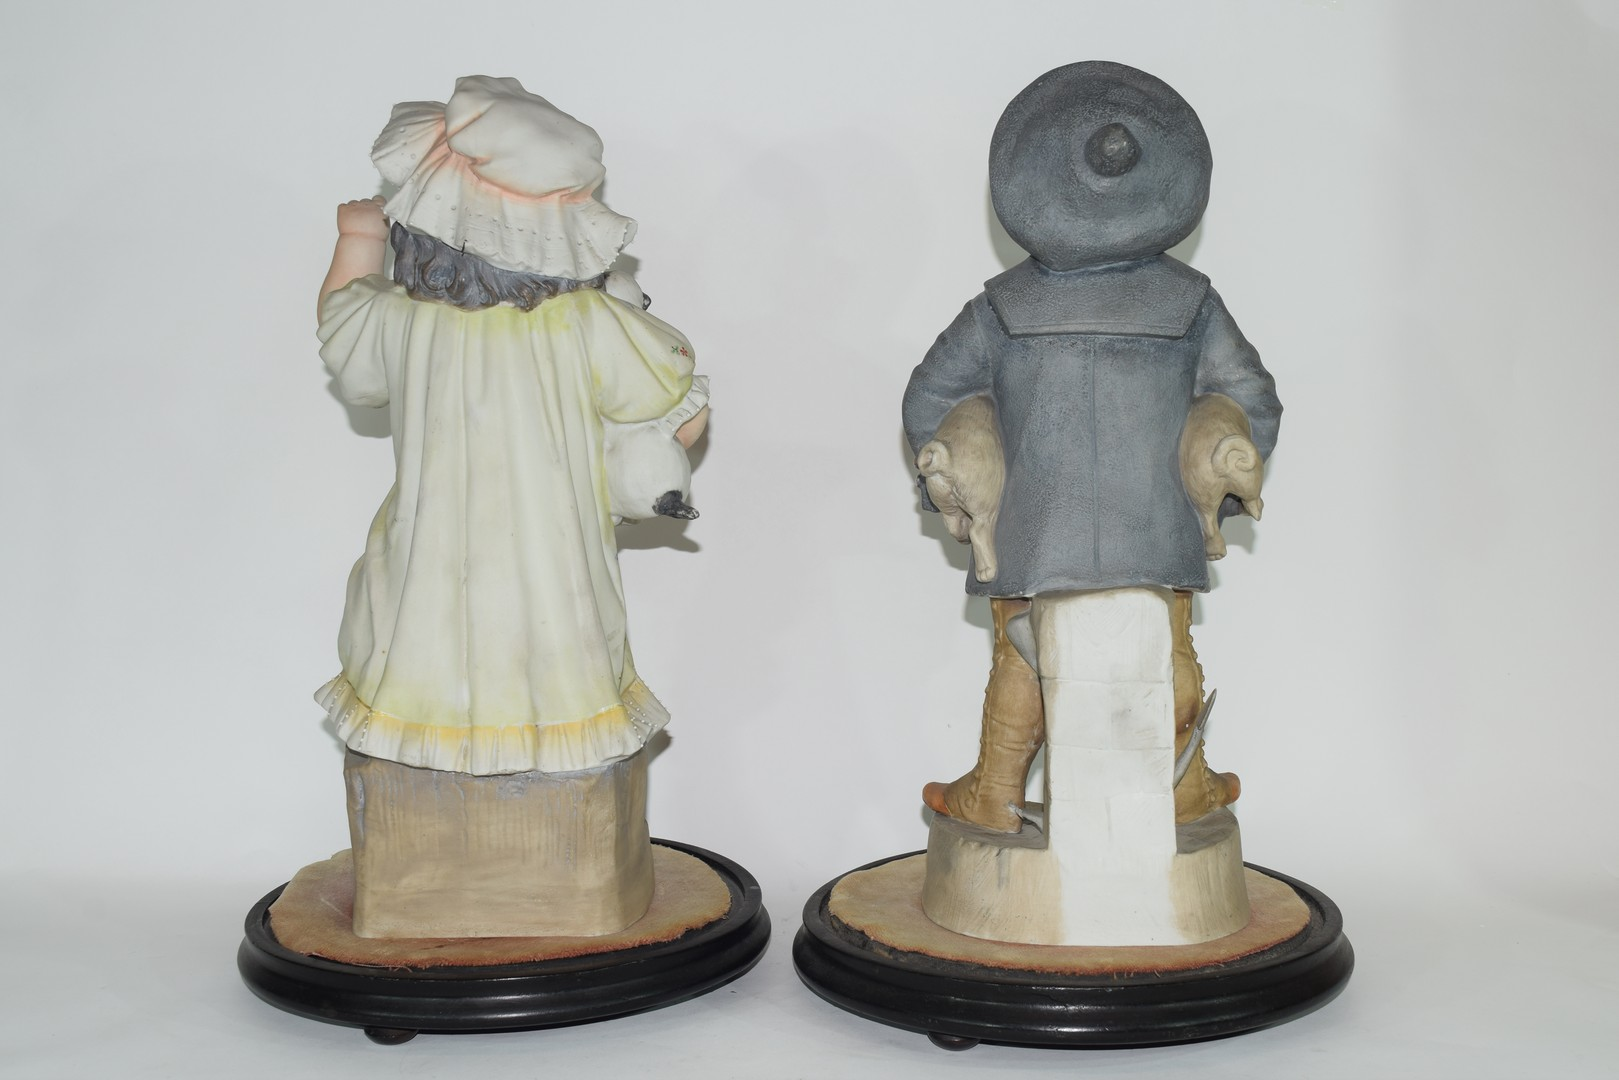 Pair of late 19th century Continental bisque figures of a boy and girl - Image 3 of 4